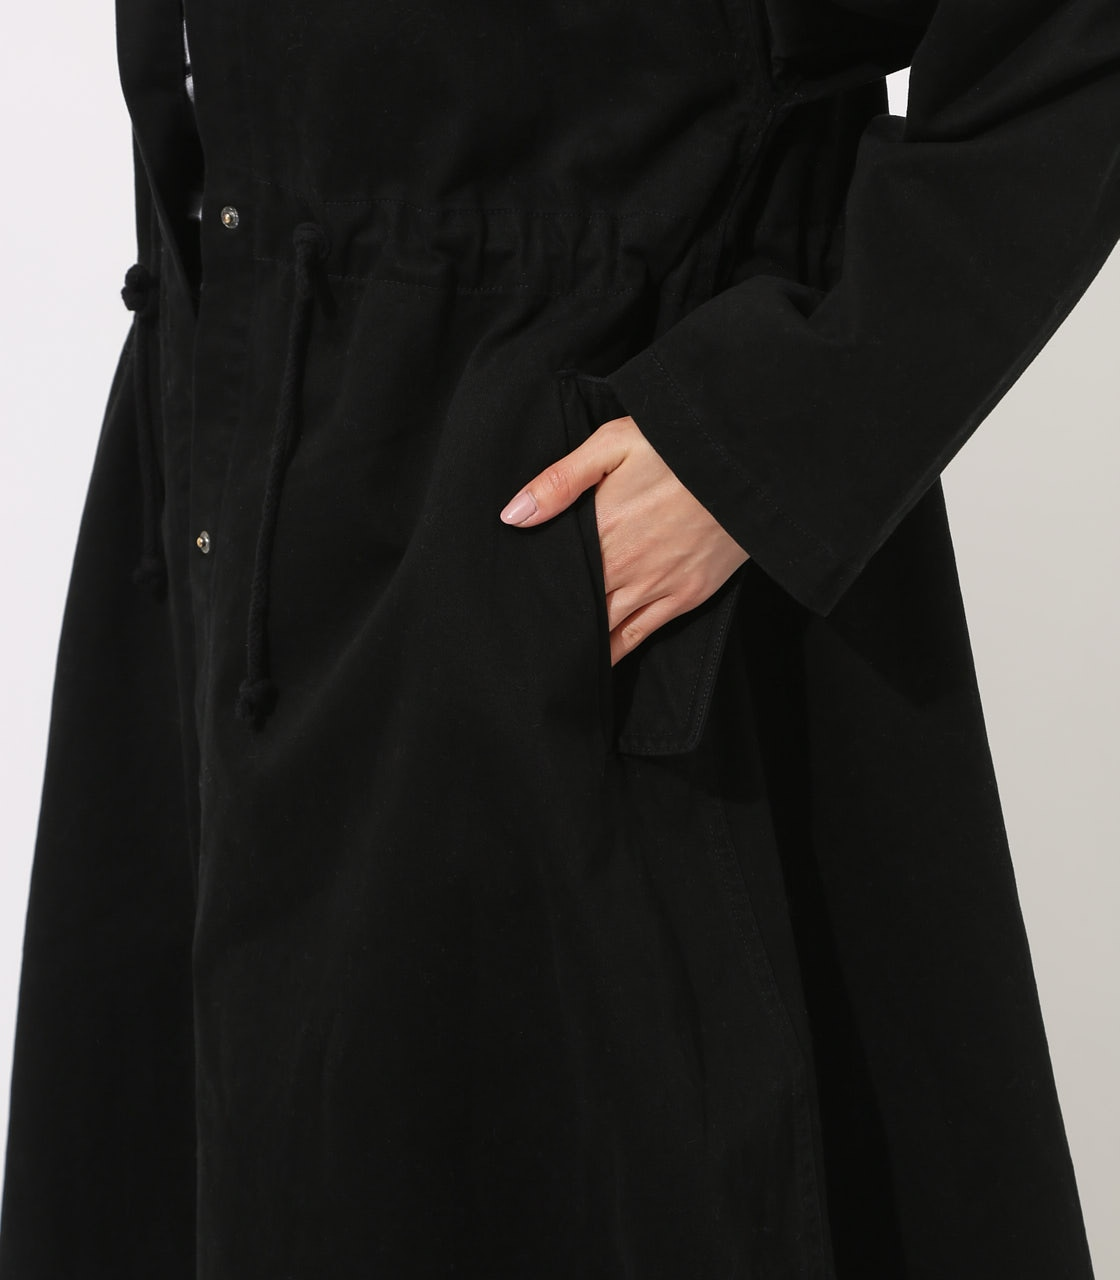 【AZUL BY MOUSSY】LOOSE MODS COAT 【MOOK49掲載 90044】 詳細画像 BLK 8